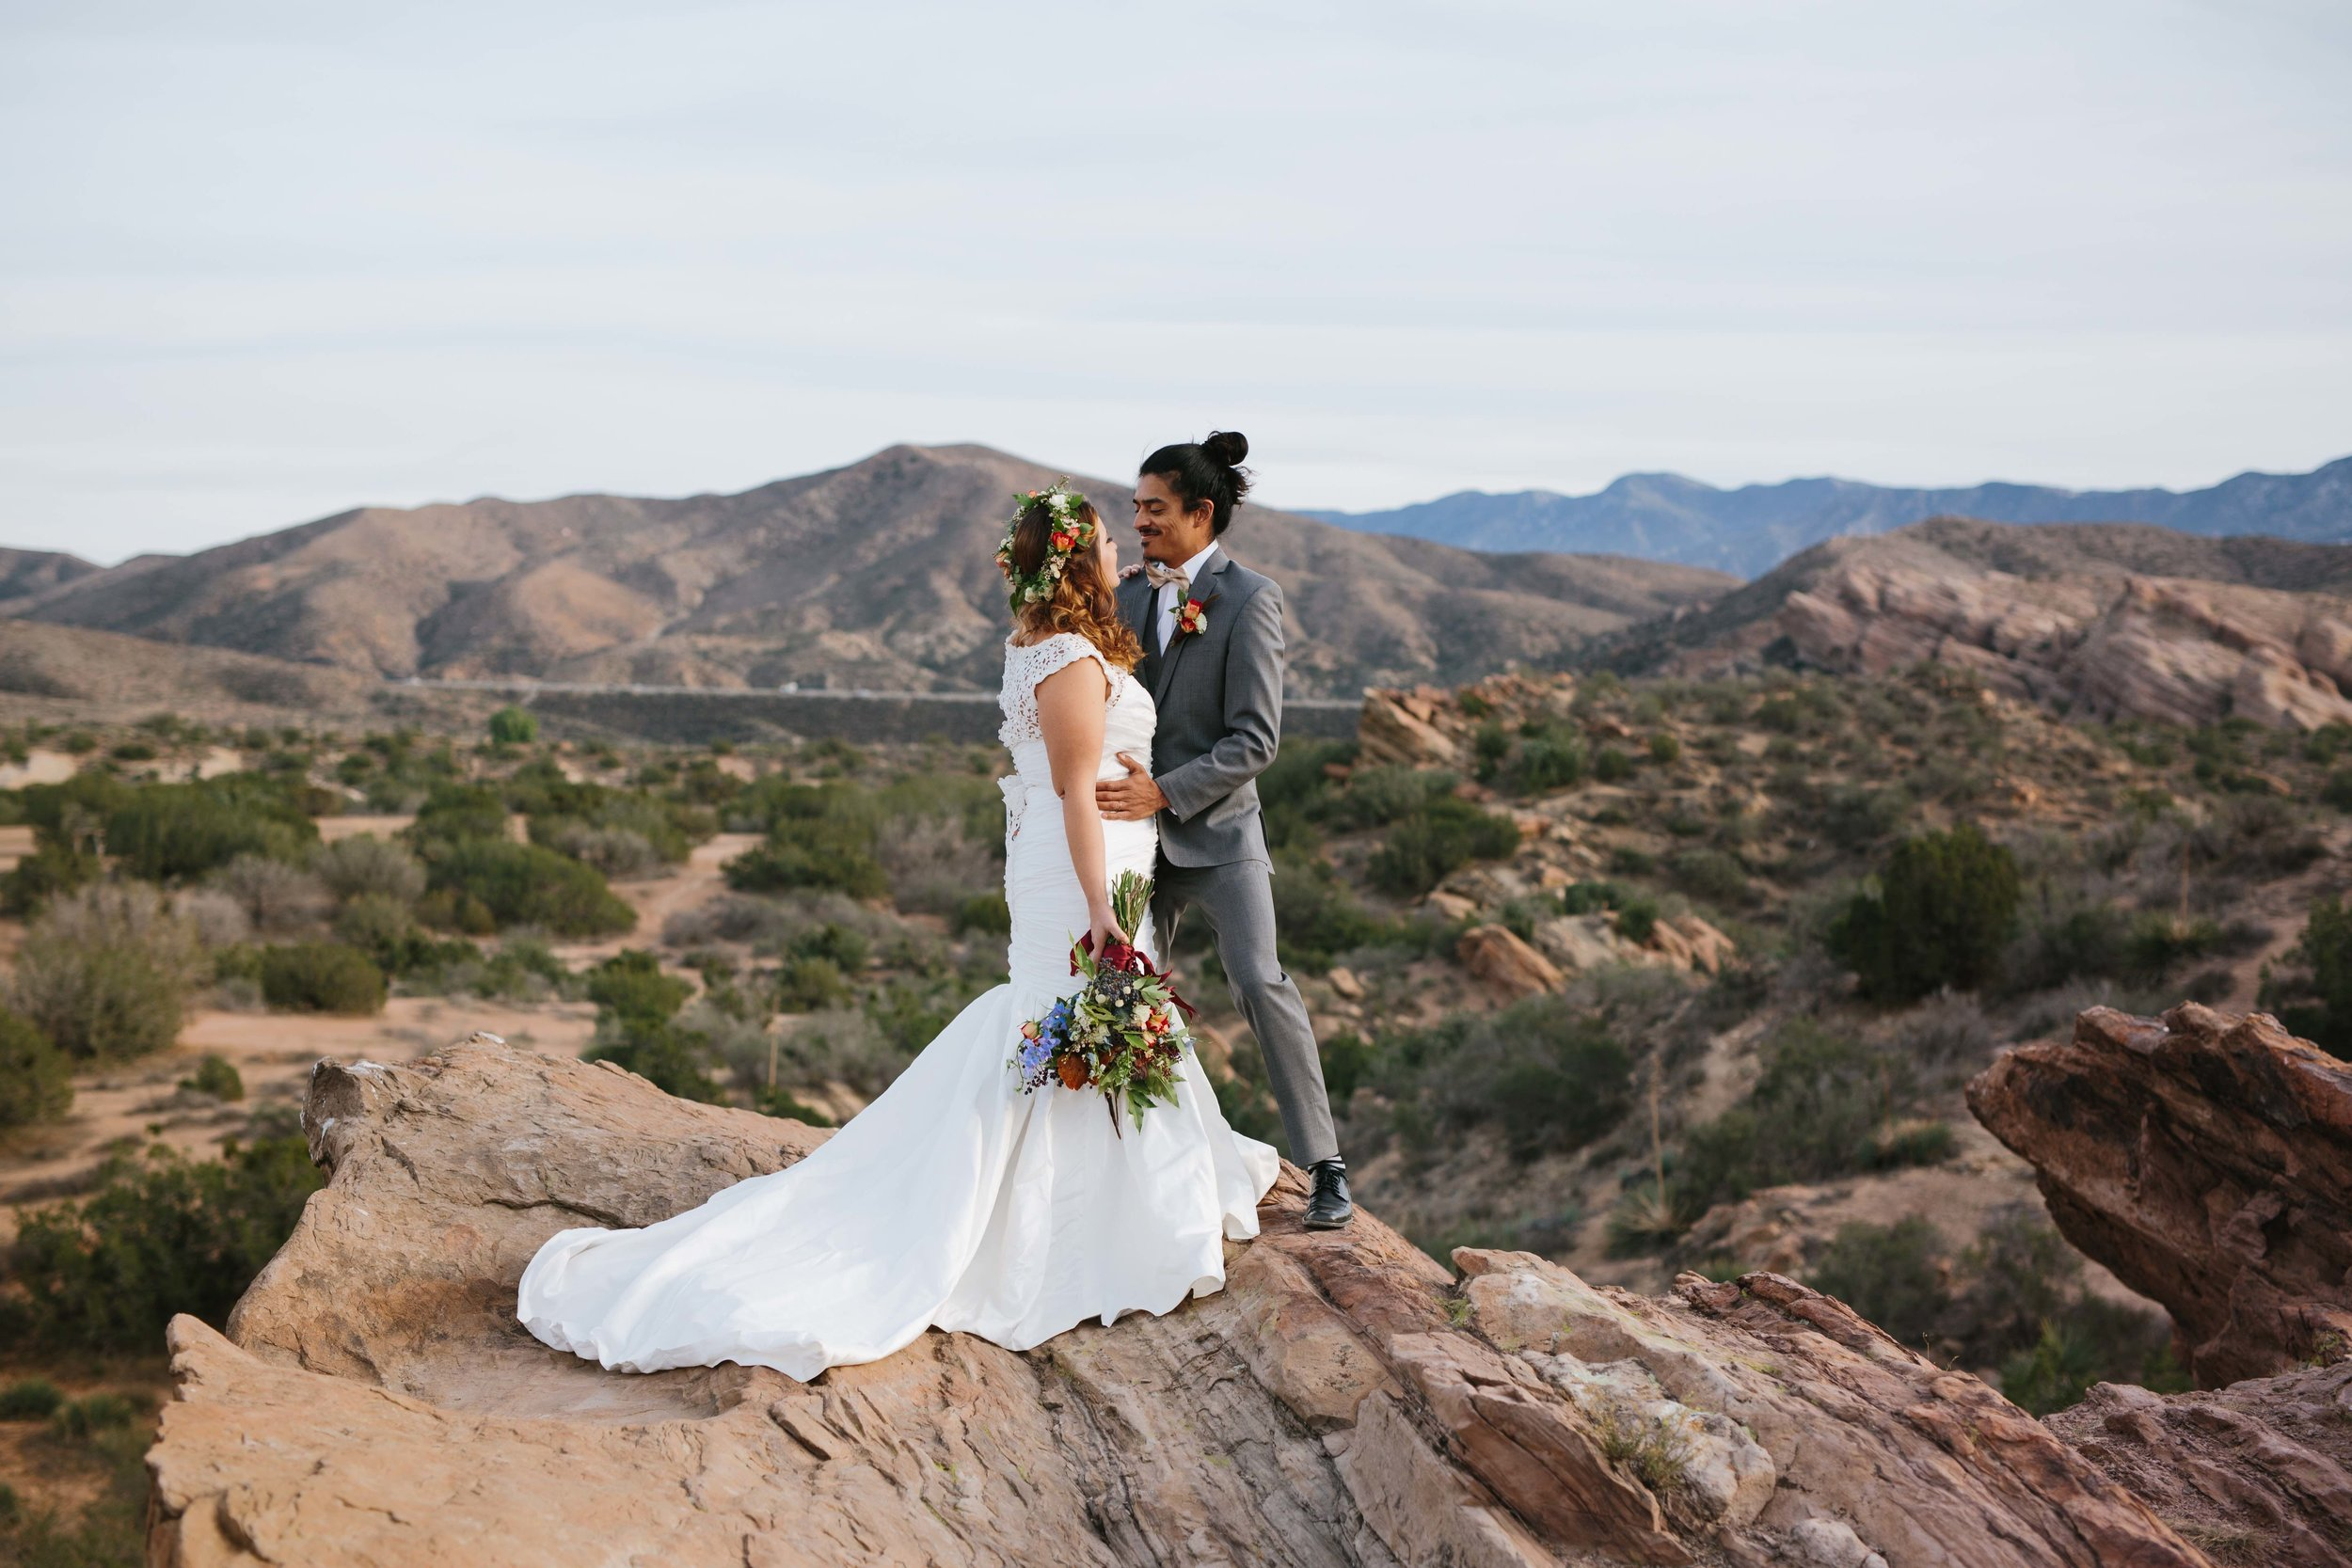 Vasquez Rocks Wedding Editorial © Abigail R Collins Photography